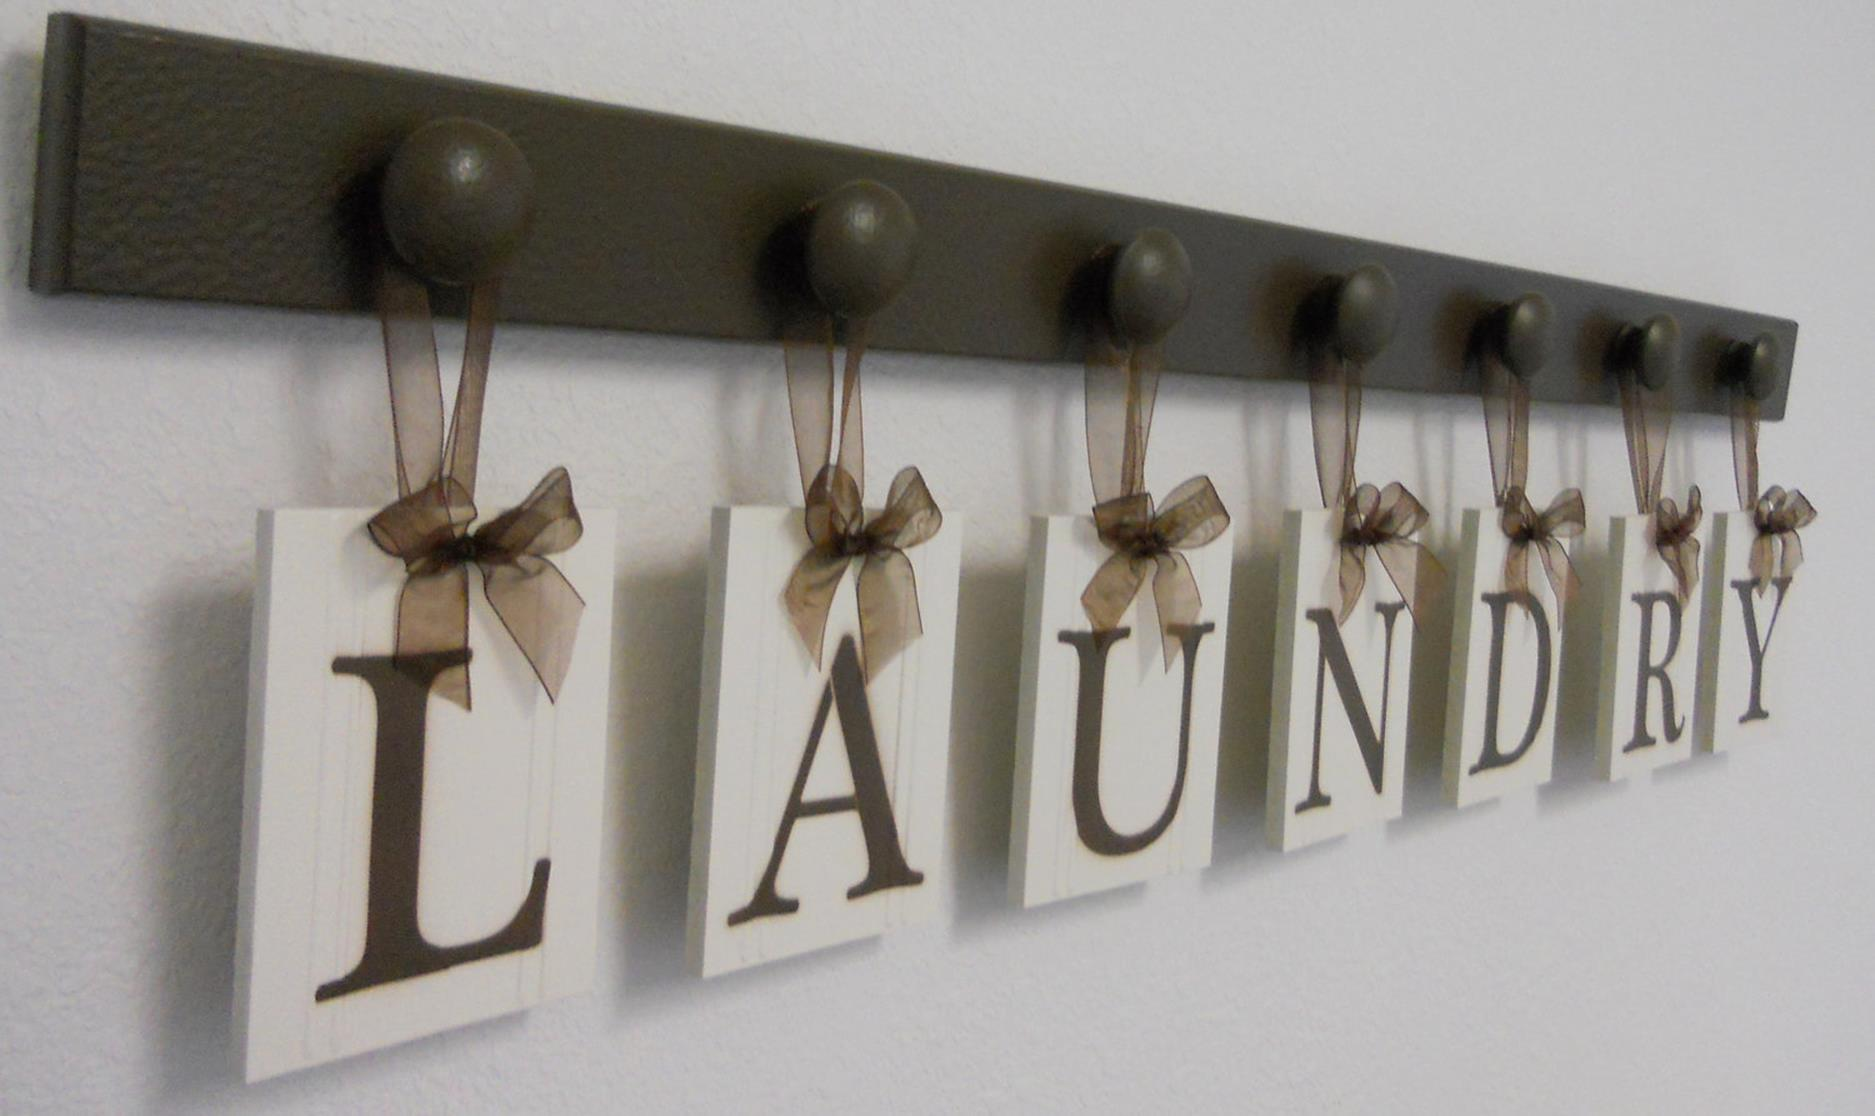 Laundry Room Accessories Decorations Ideas 18